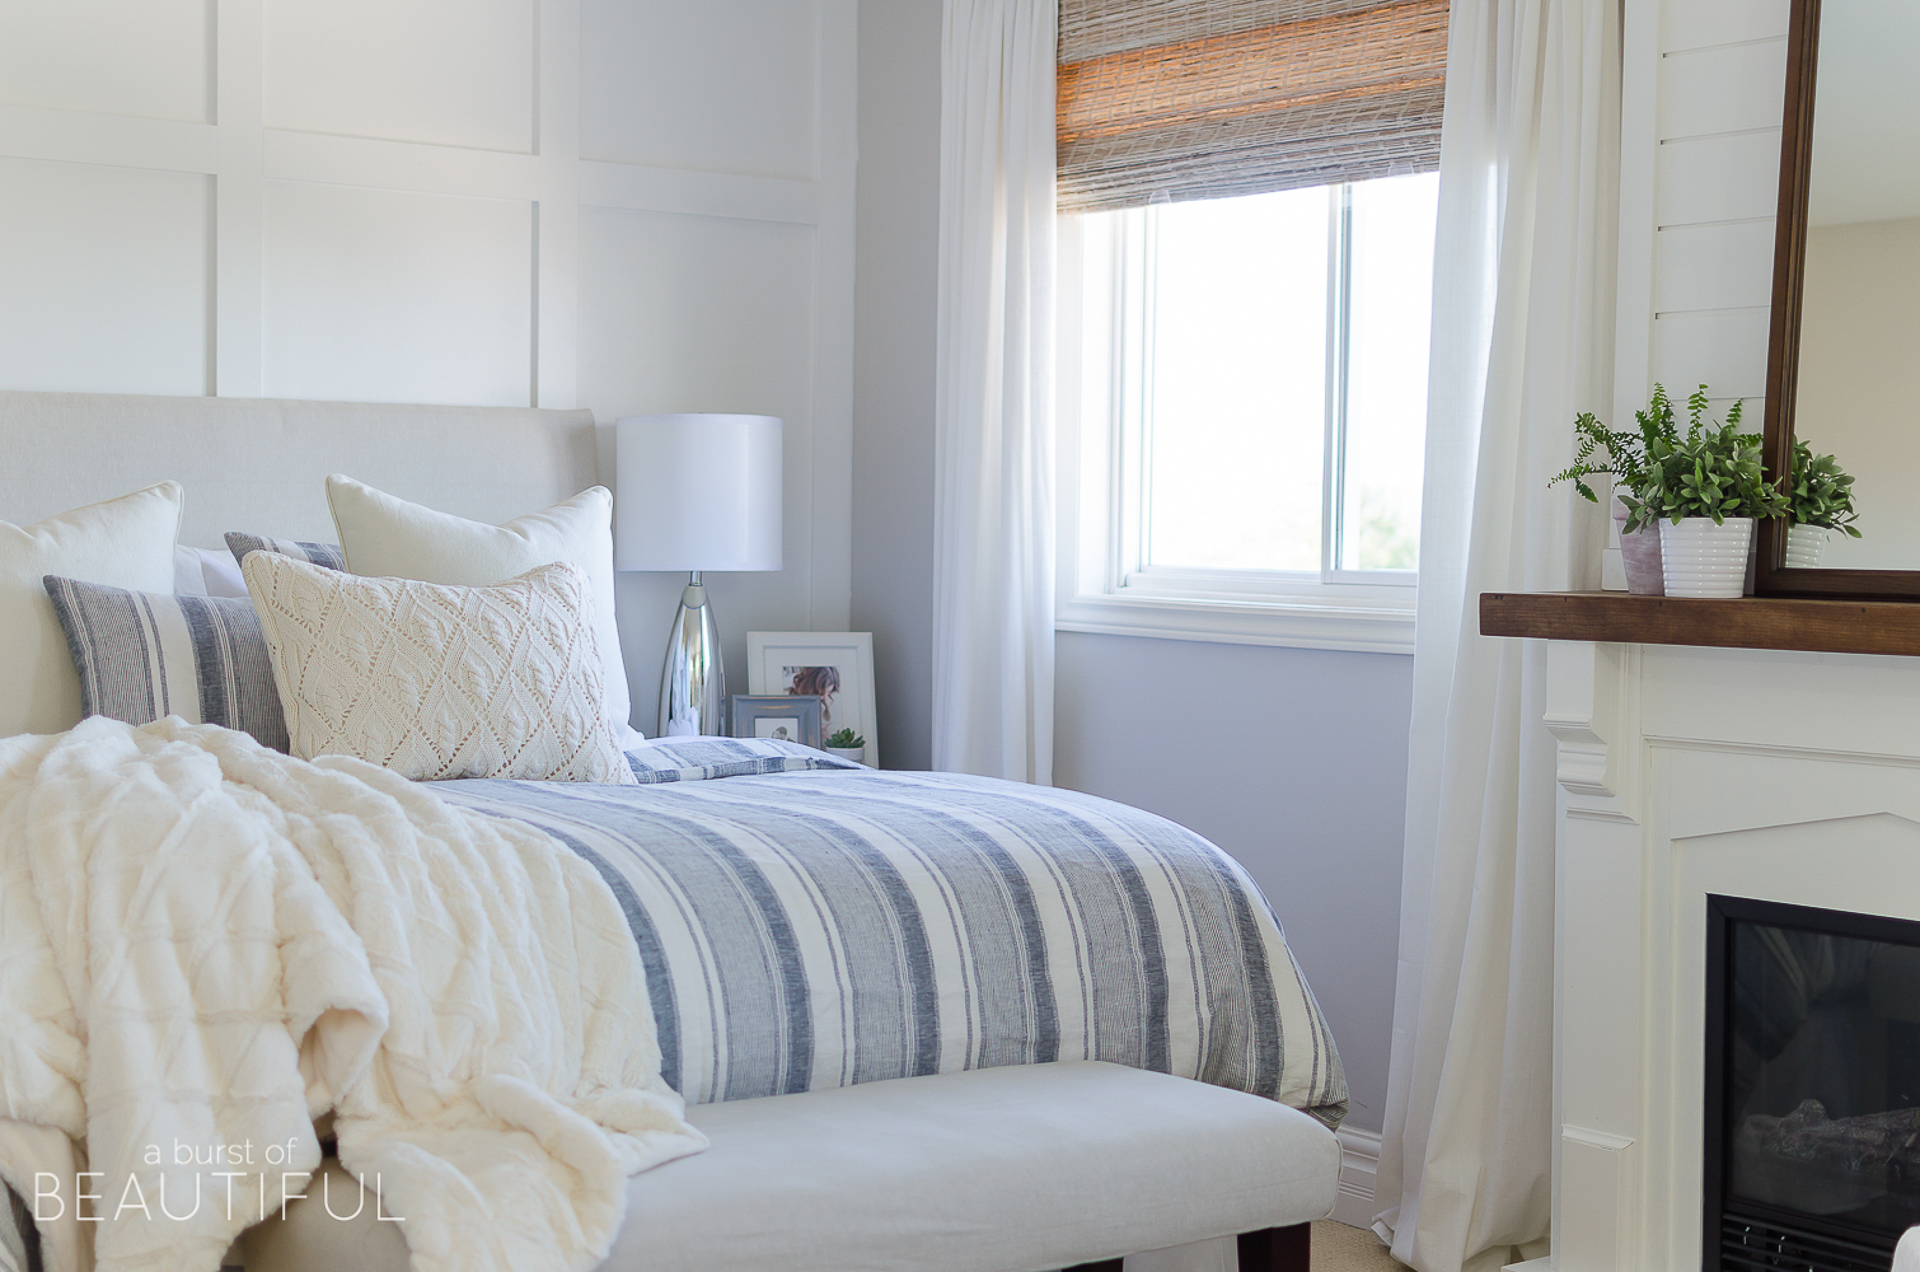 how to decorate a master bedroom - use the right window treatments